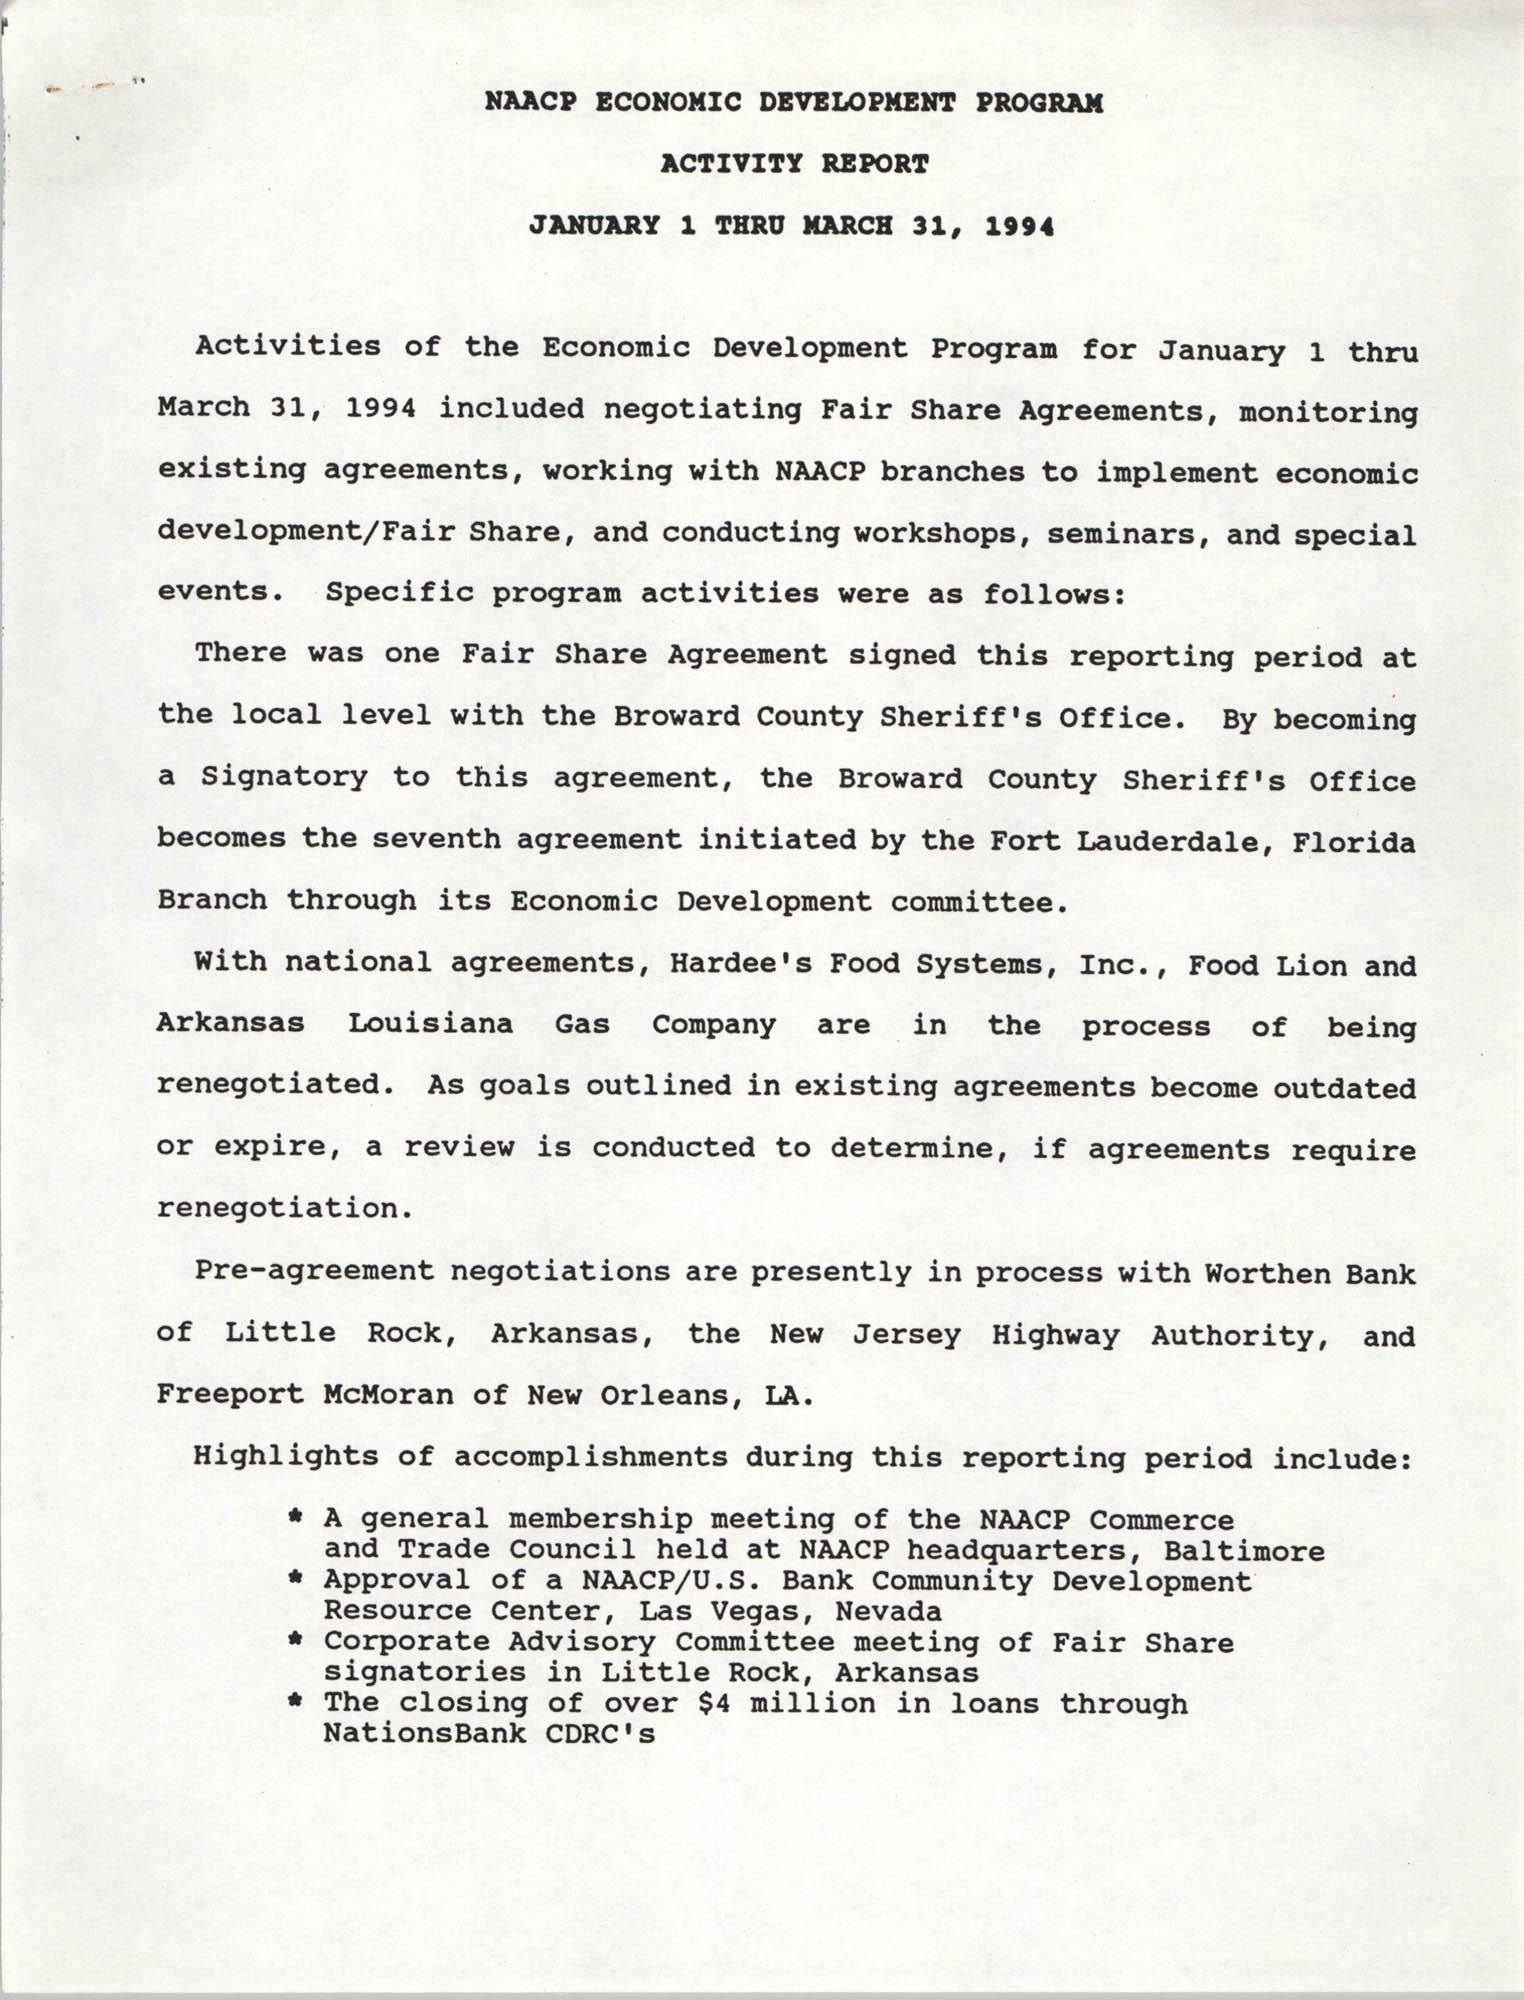 NAACP Economic Development Program Activity Report, January 1 to March 31, 1994